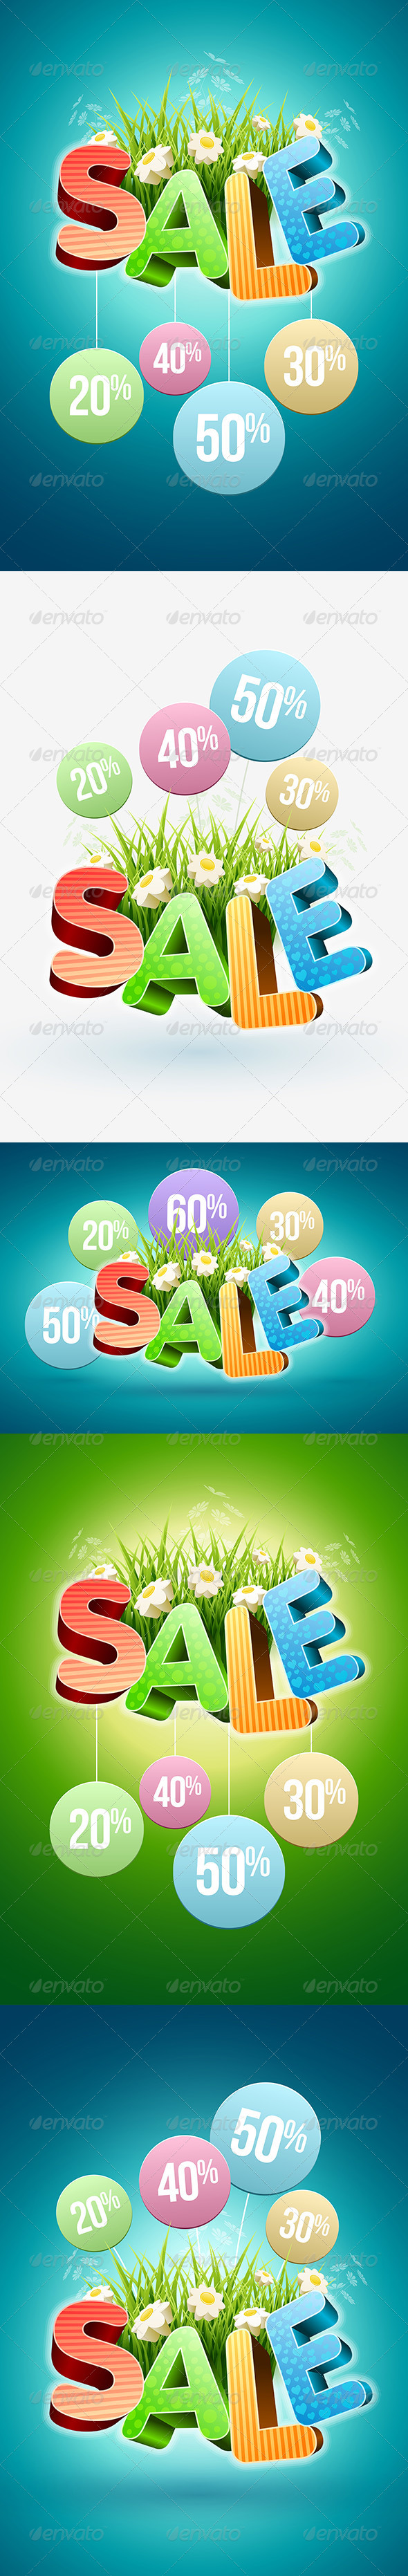 GraphicRiver Spring and Summer Sale Poster 7100532